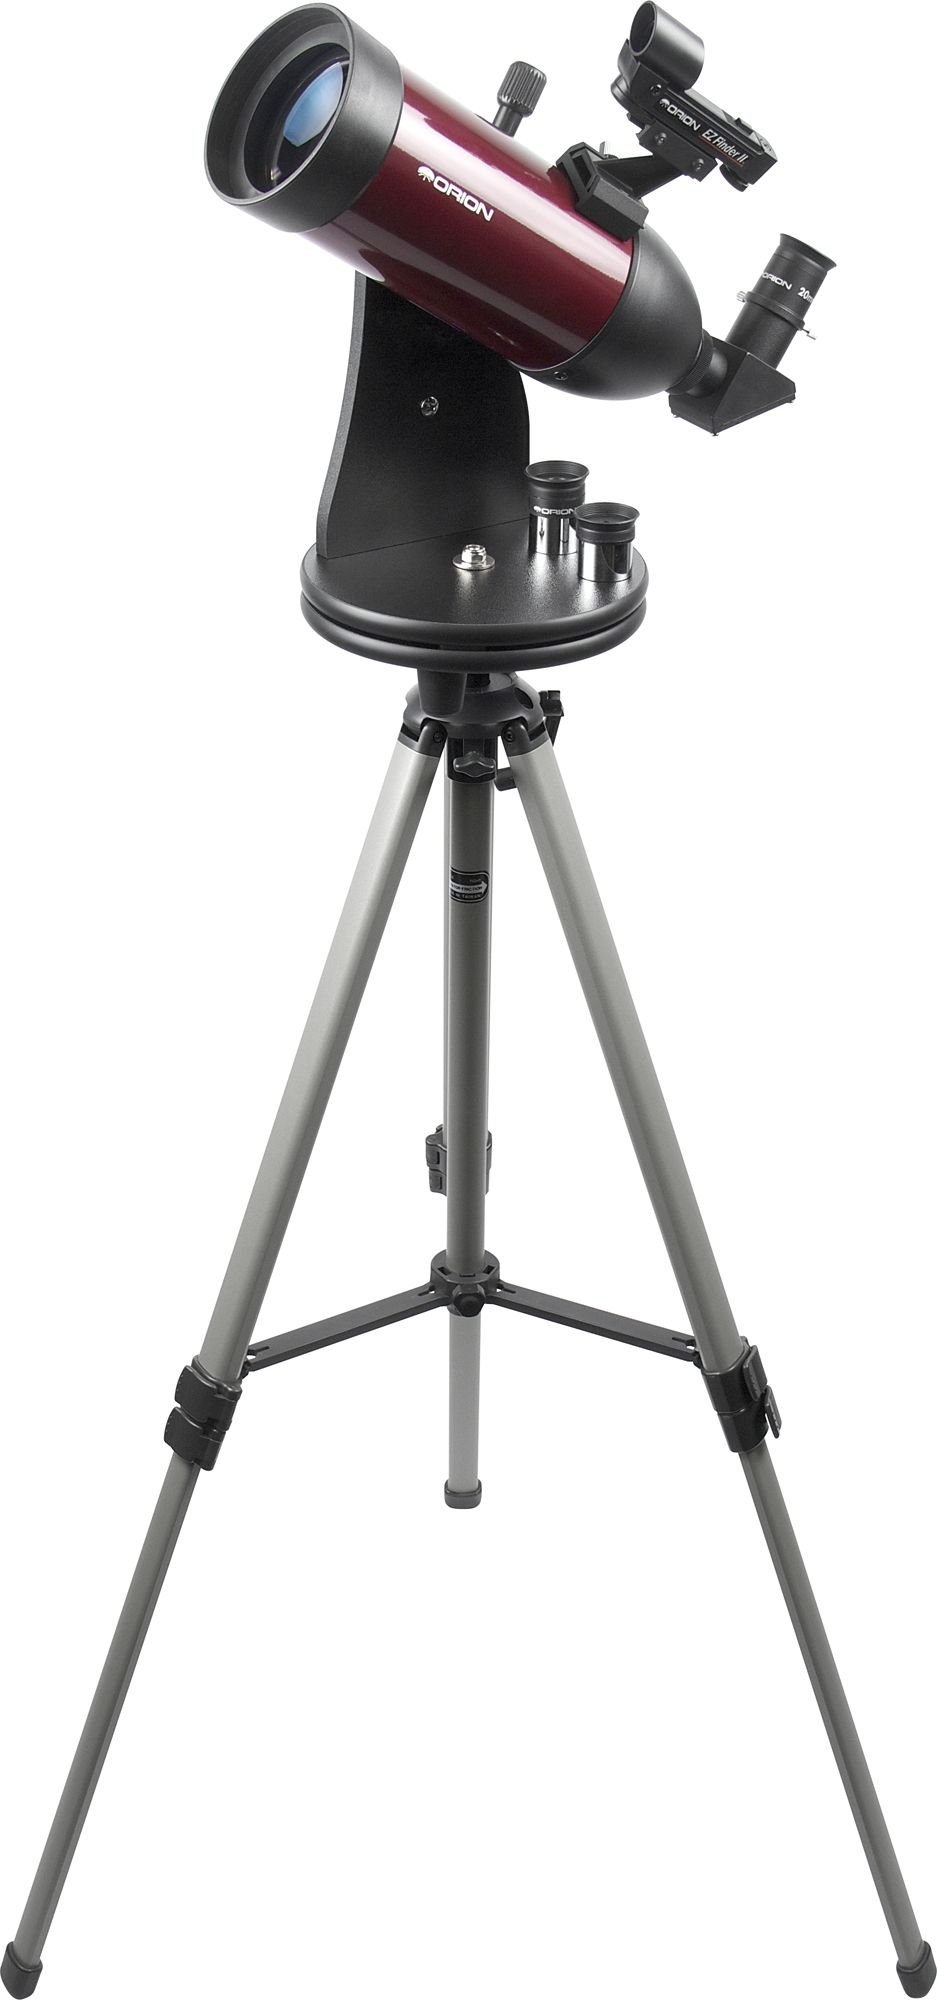 Orion GoScope 80mm Refractor Telescope and Tripod Bundle by Orion